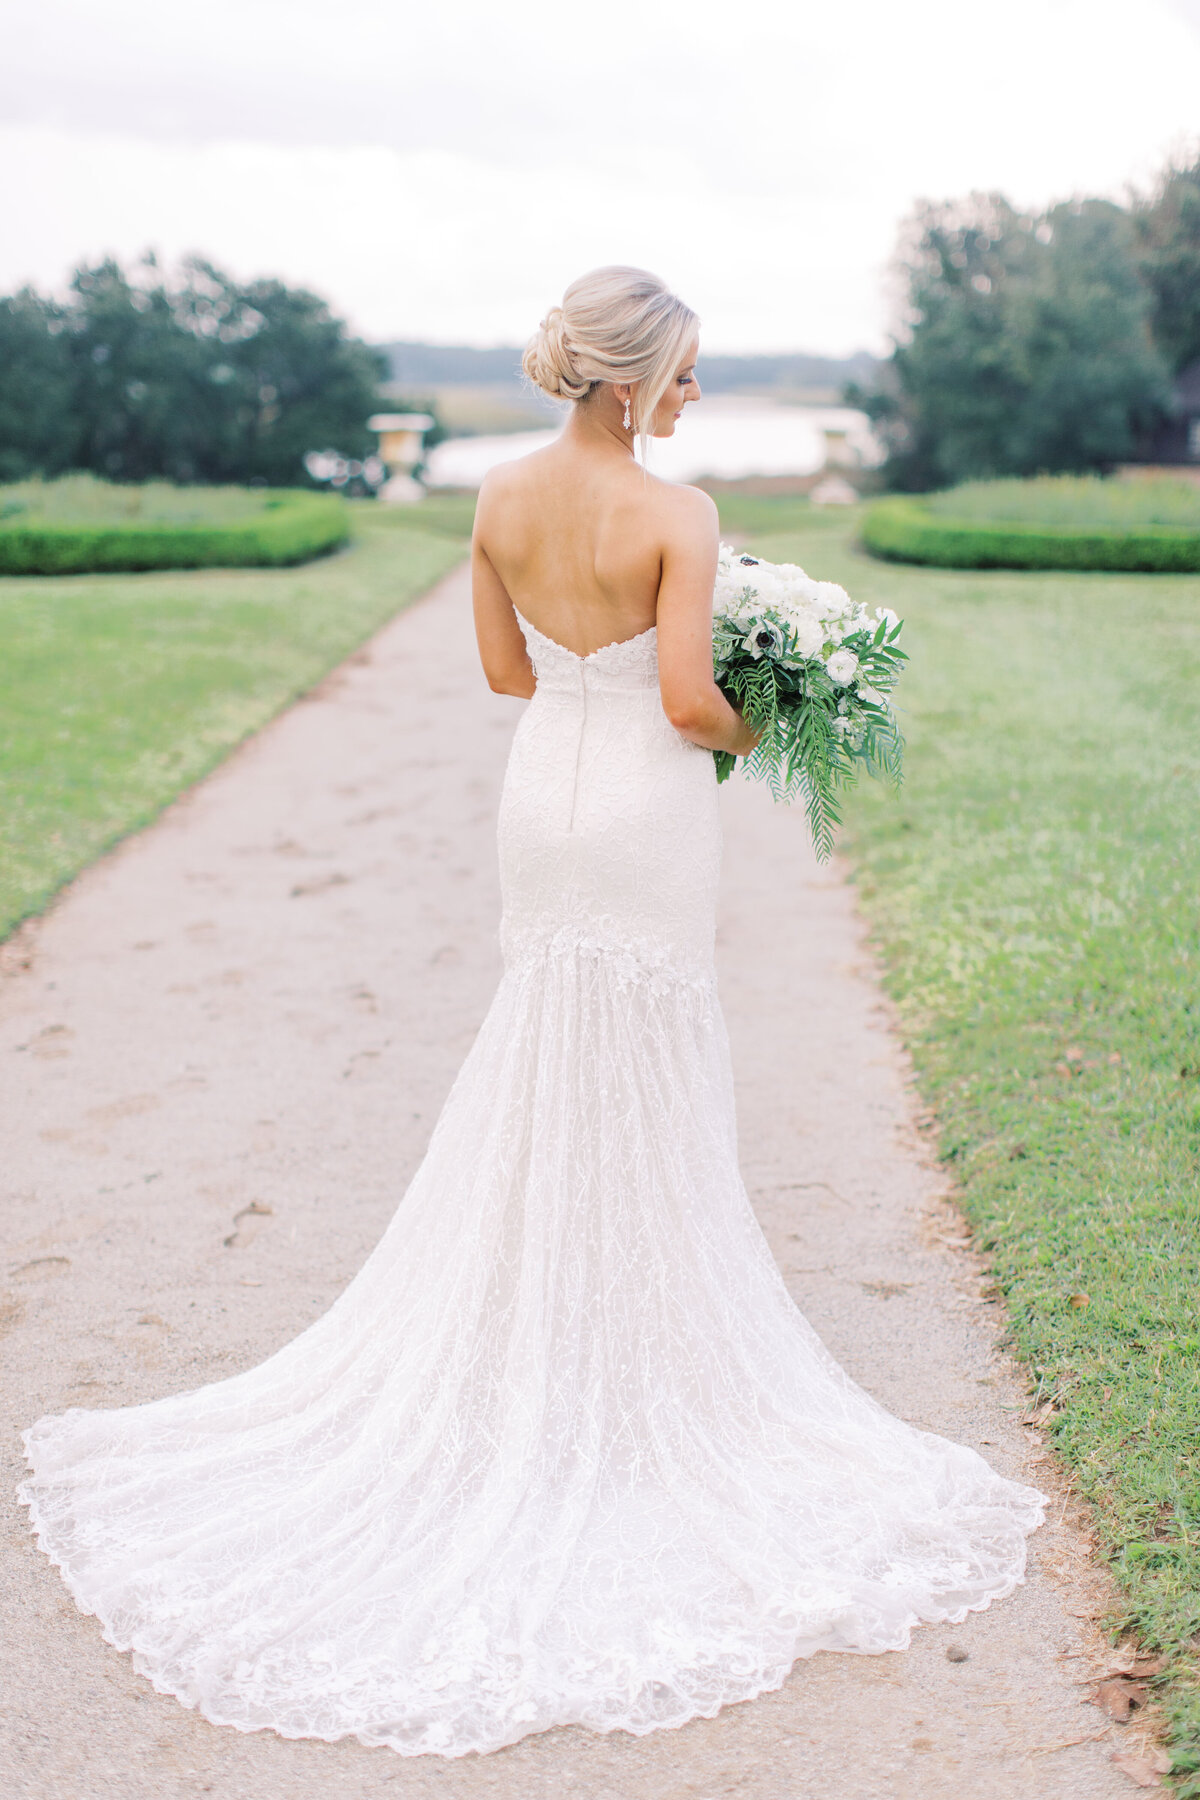 Melton_Wedding__Middleton_Place_Plantation_Charleston_South_Carolina_Jacksonville_Florida_Devon_Donnahoo_Photography__0291